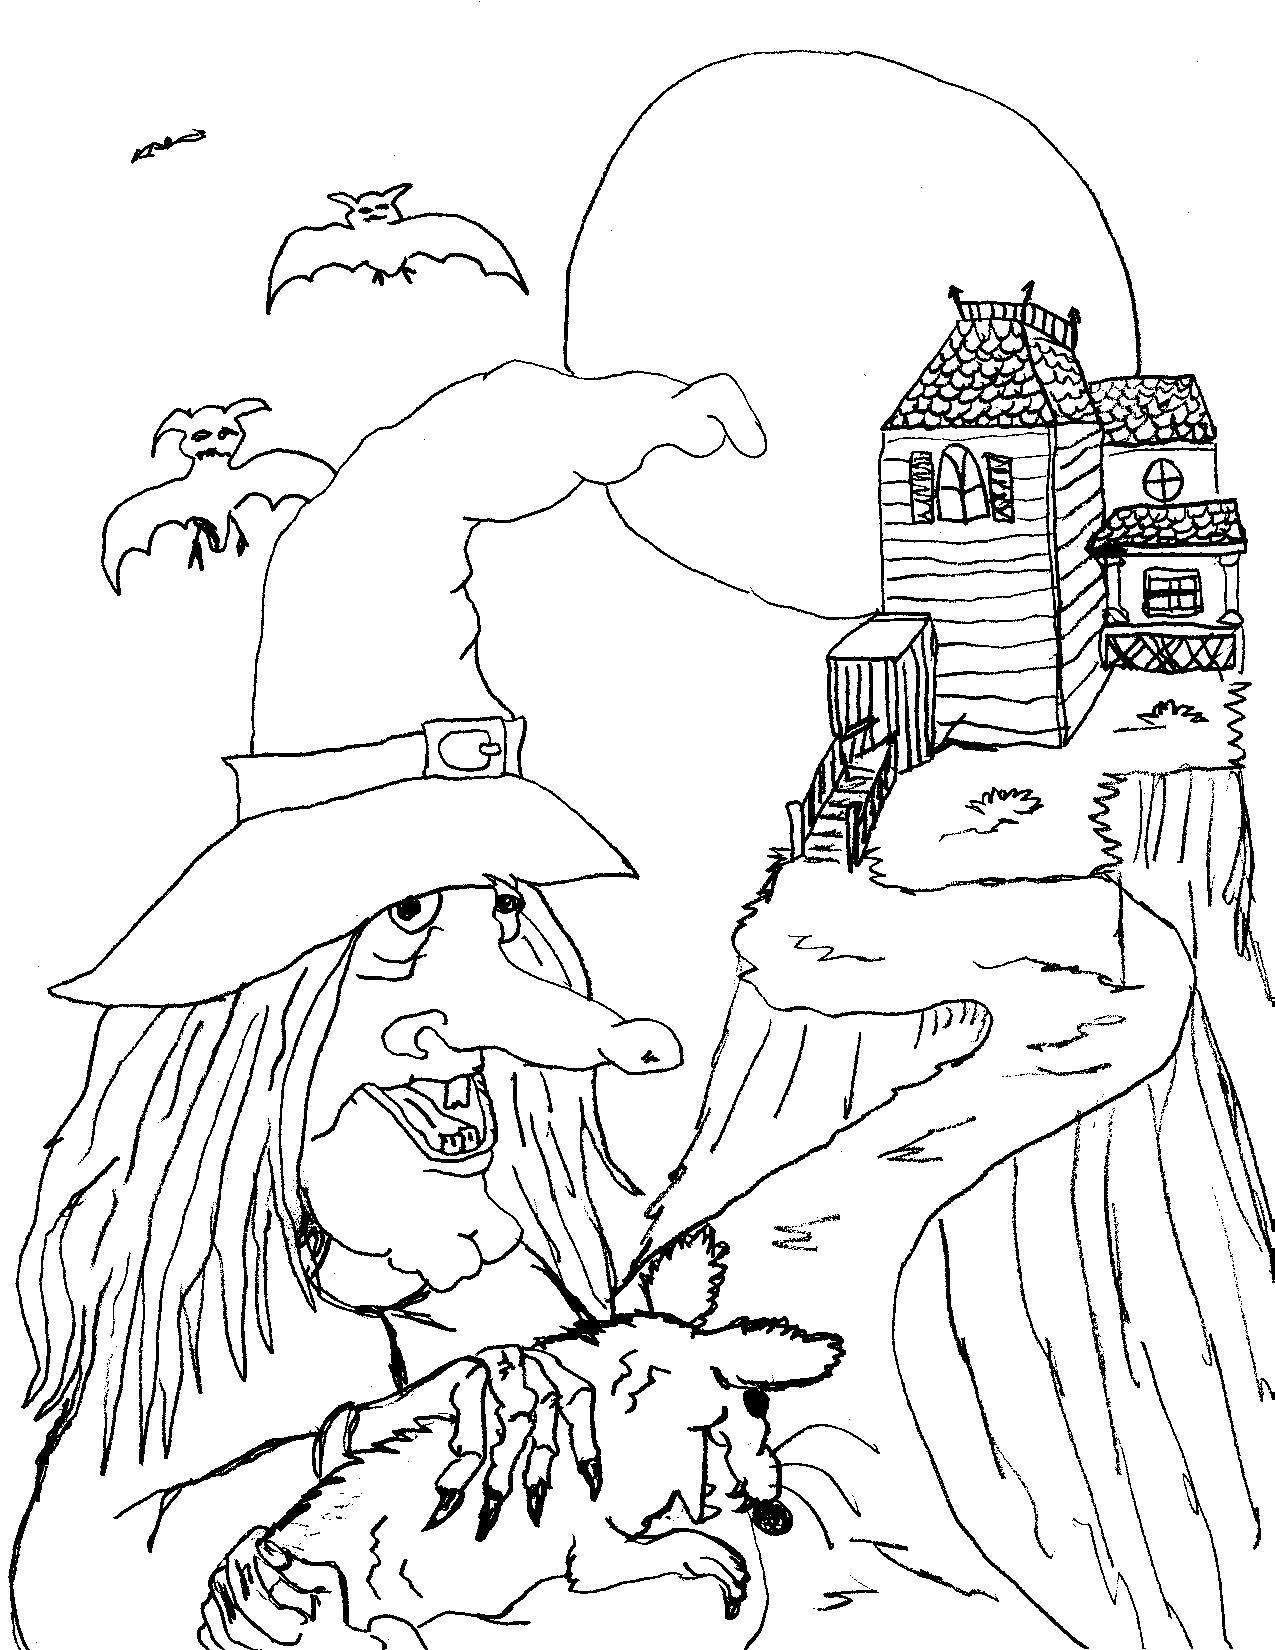 Scary Halloween Coloring Pages | ... january 6 2012 ...